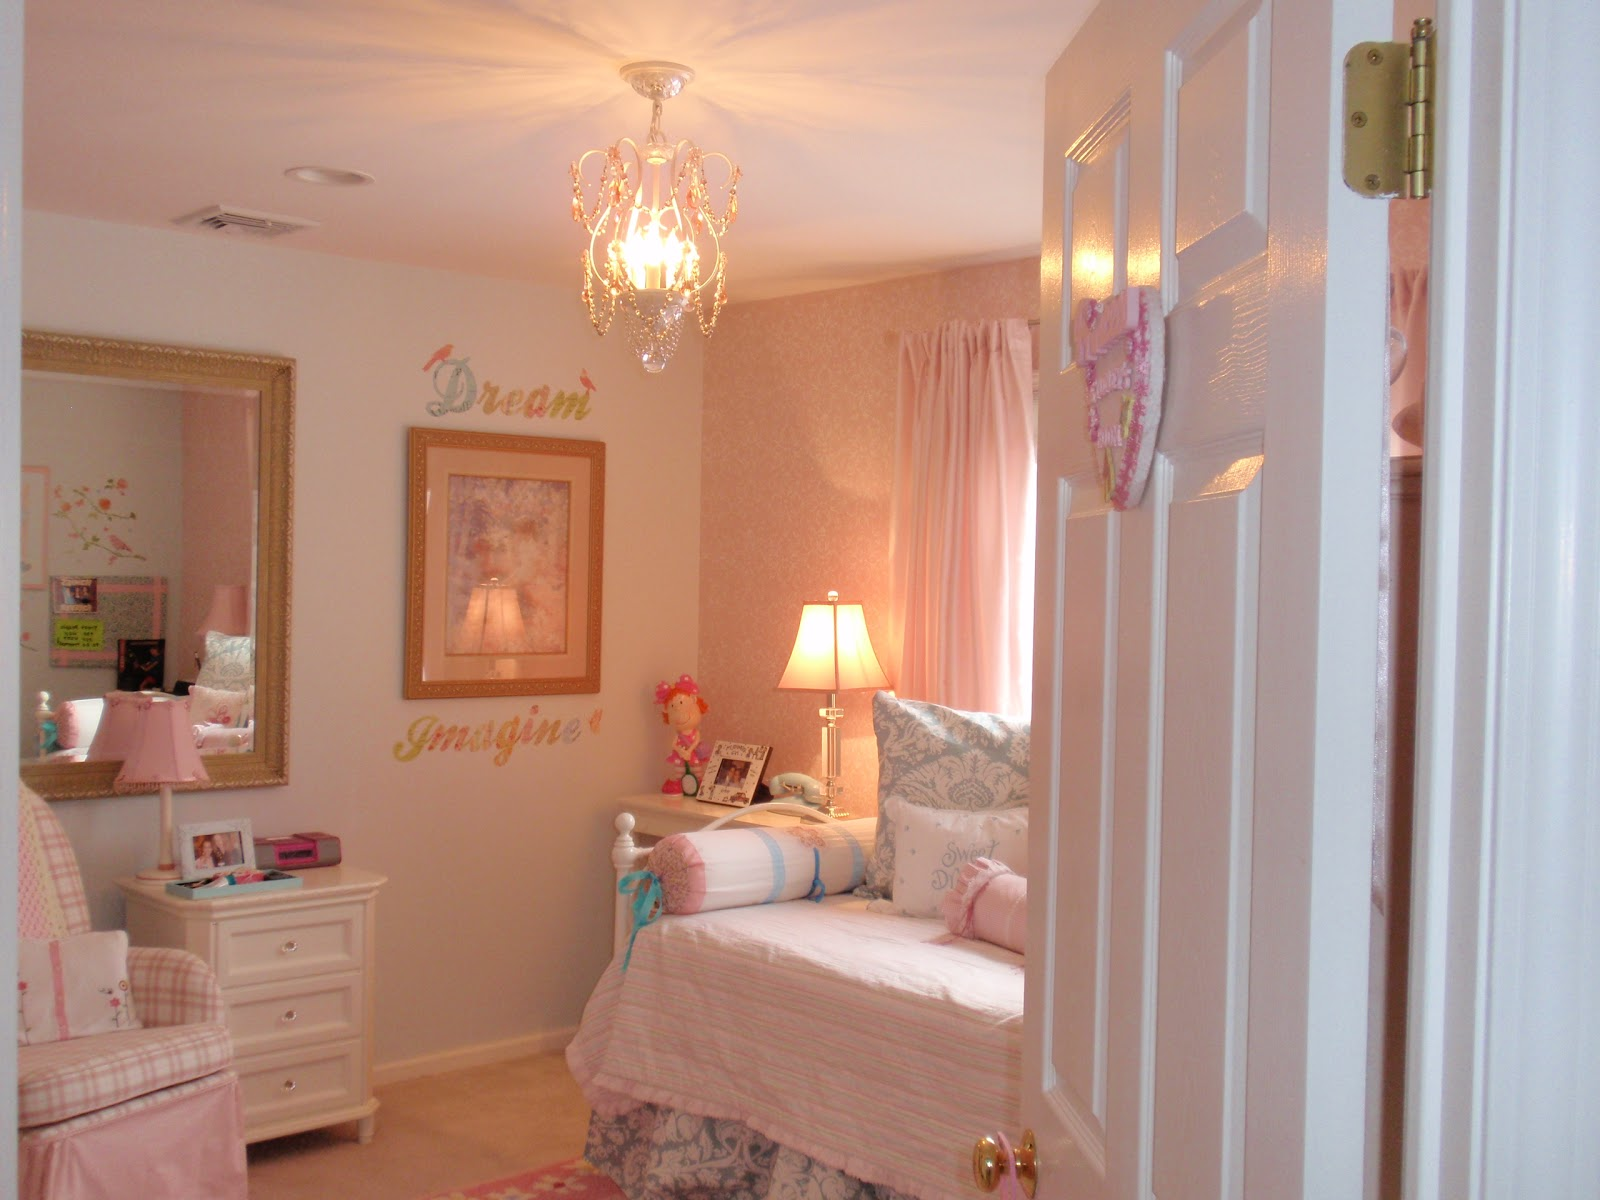 From Junk Room To Beautiful Bedroom The Big Reveal: DIY By Design: My Daughter's Room